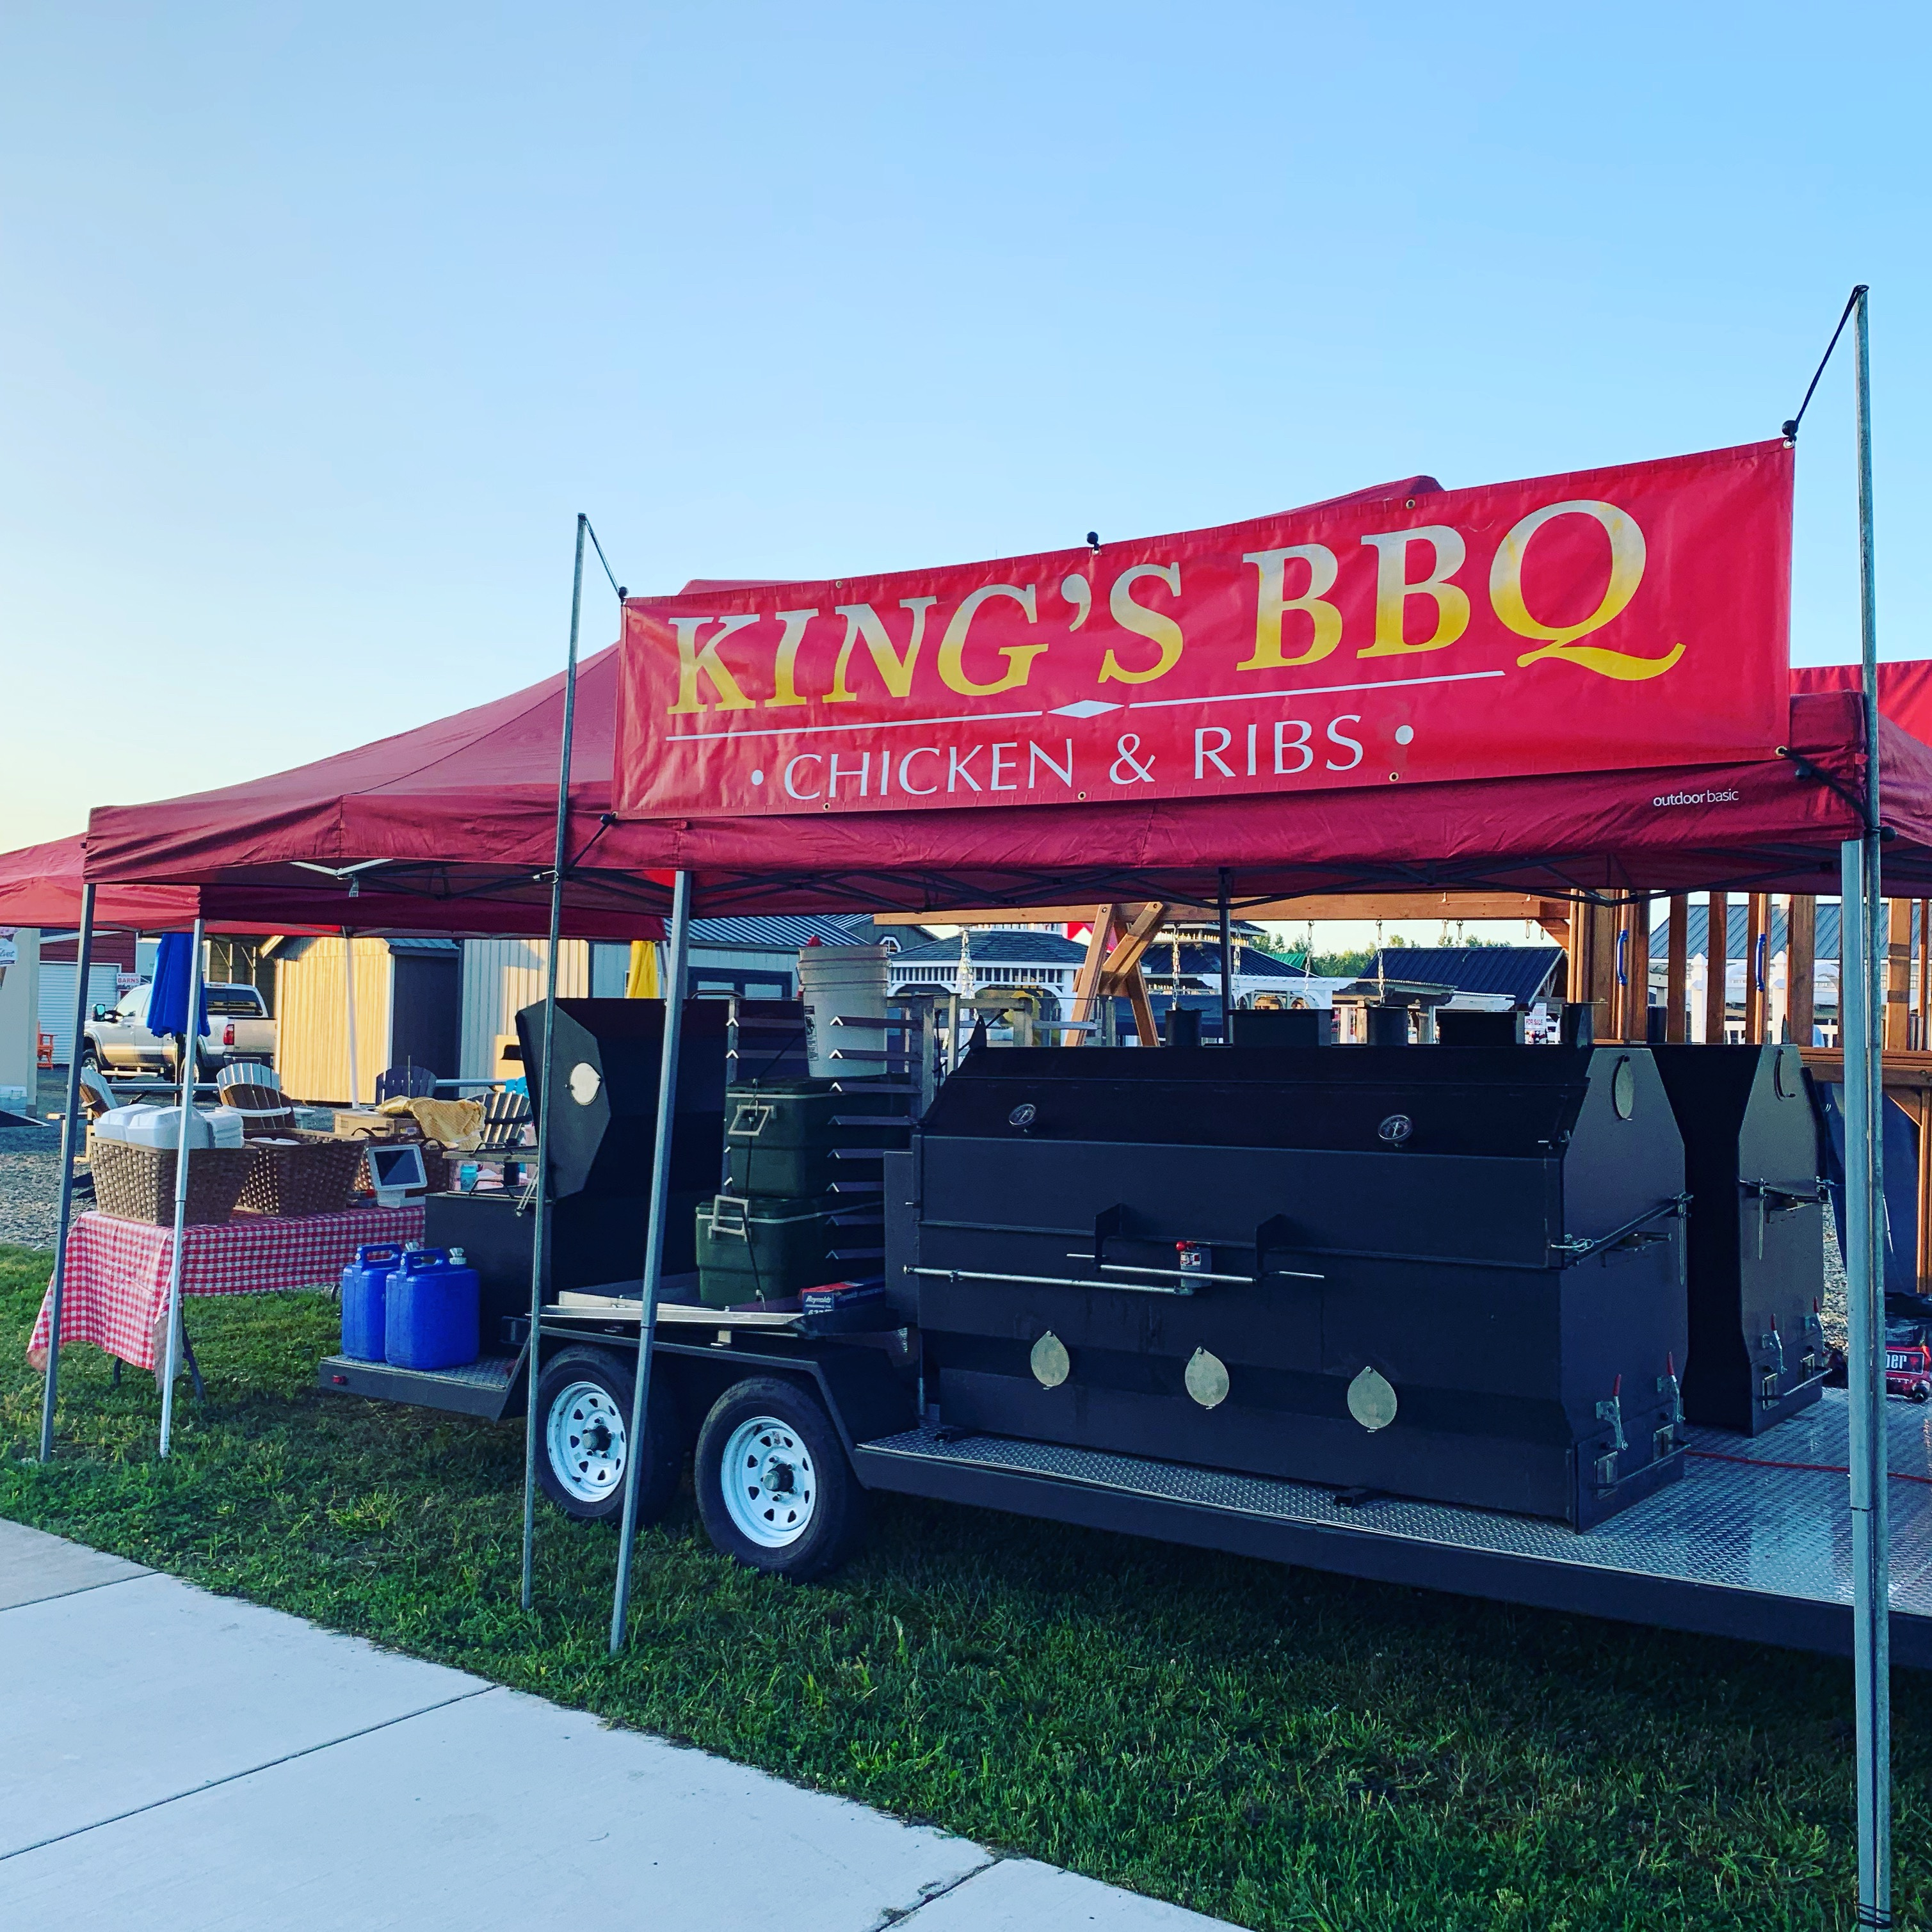 King's BBQ out retailing